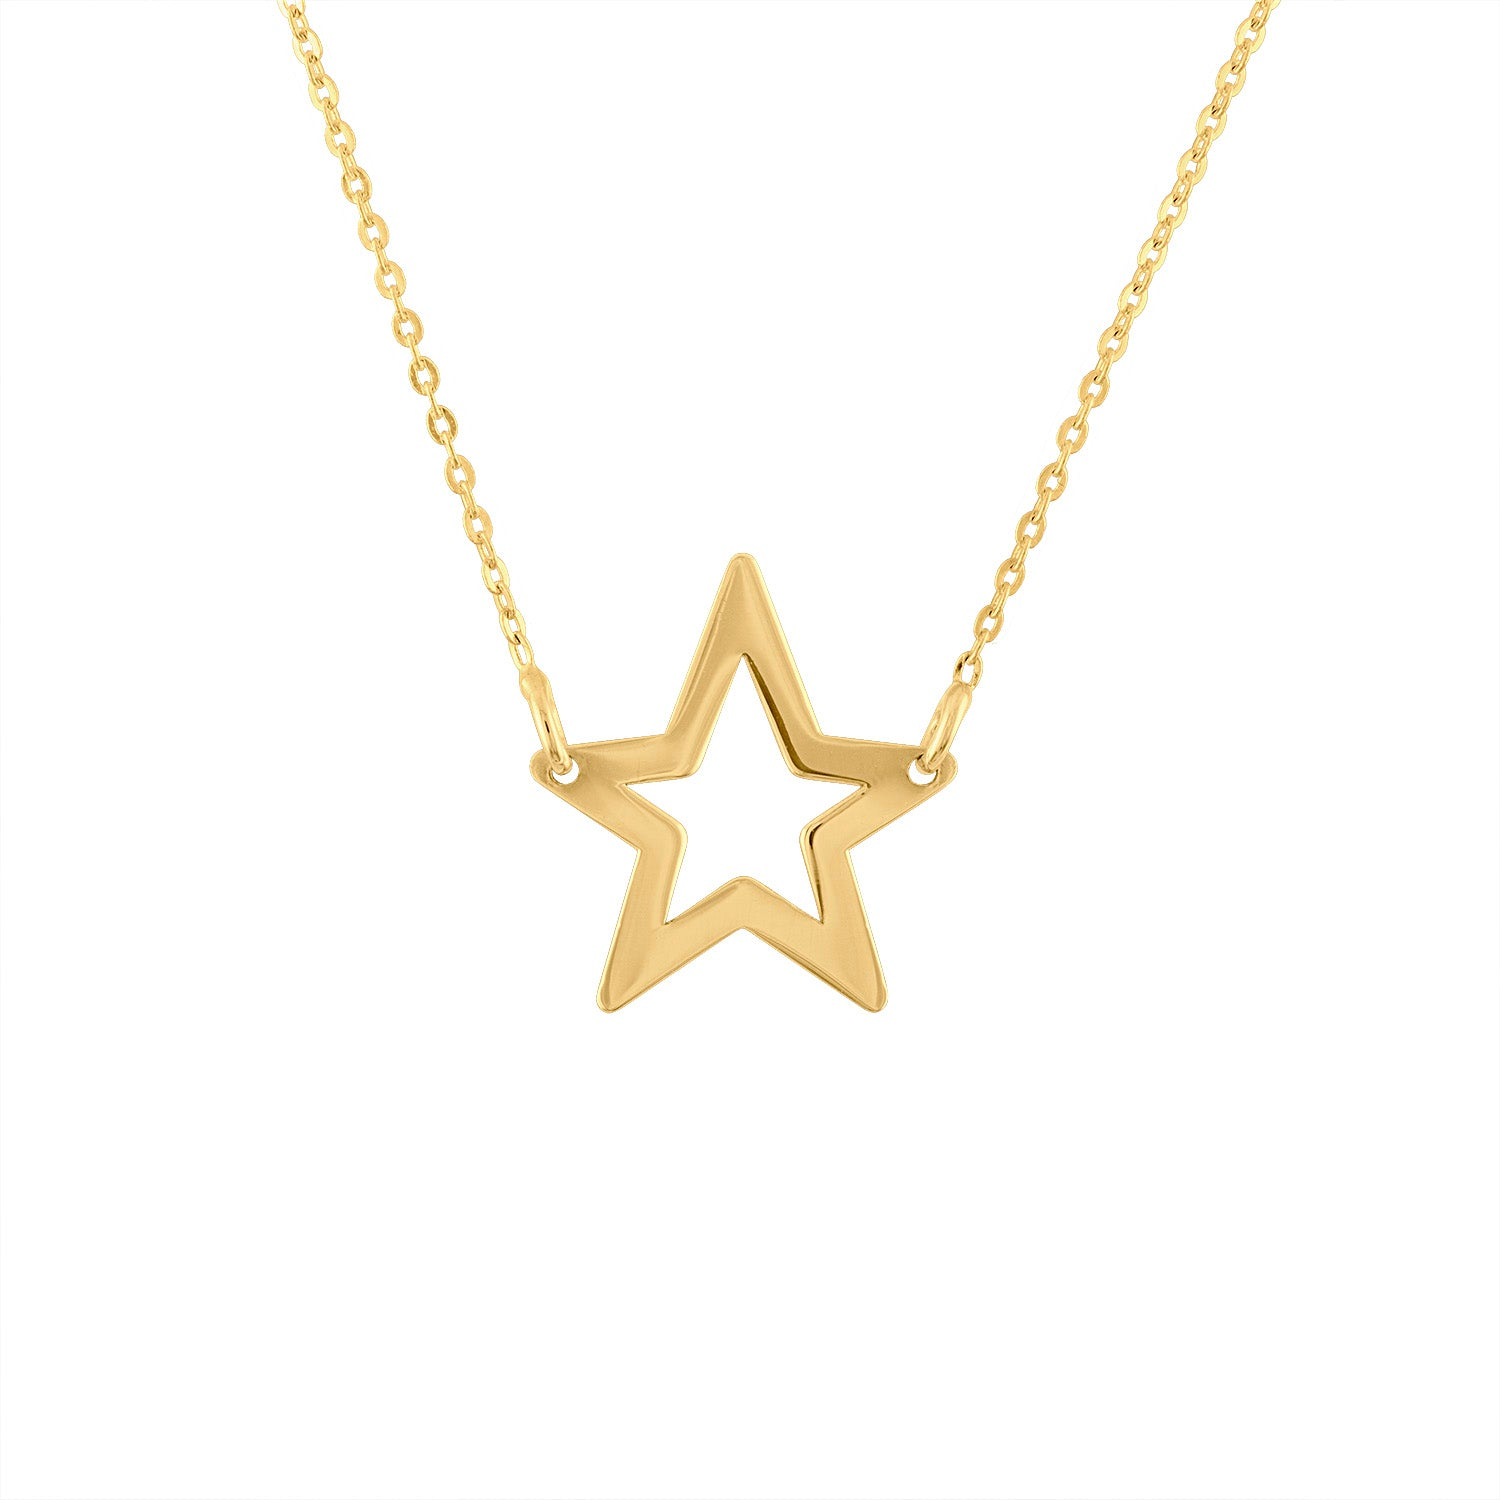 14KT GOLD OPEN STAR NECKLACE